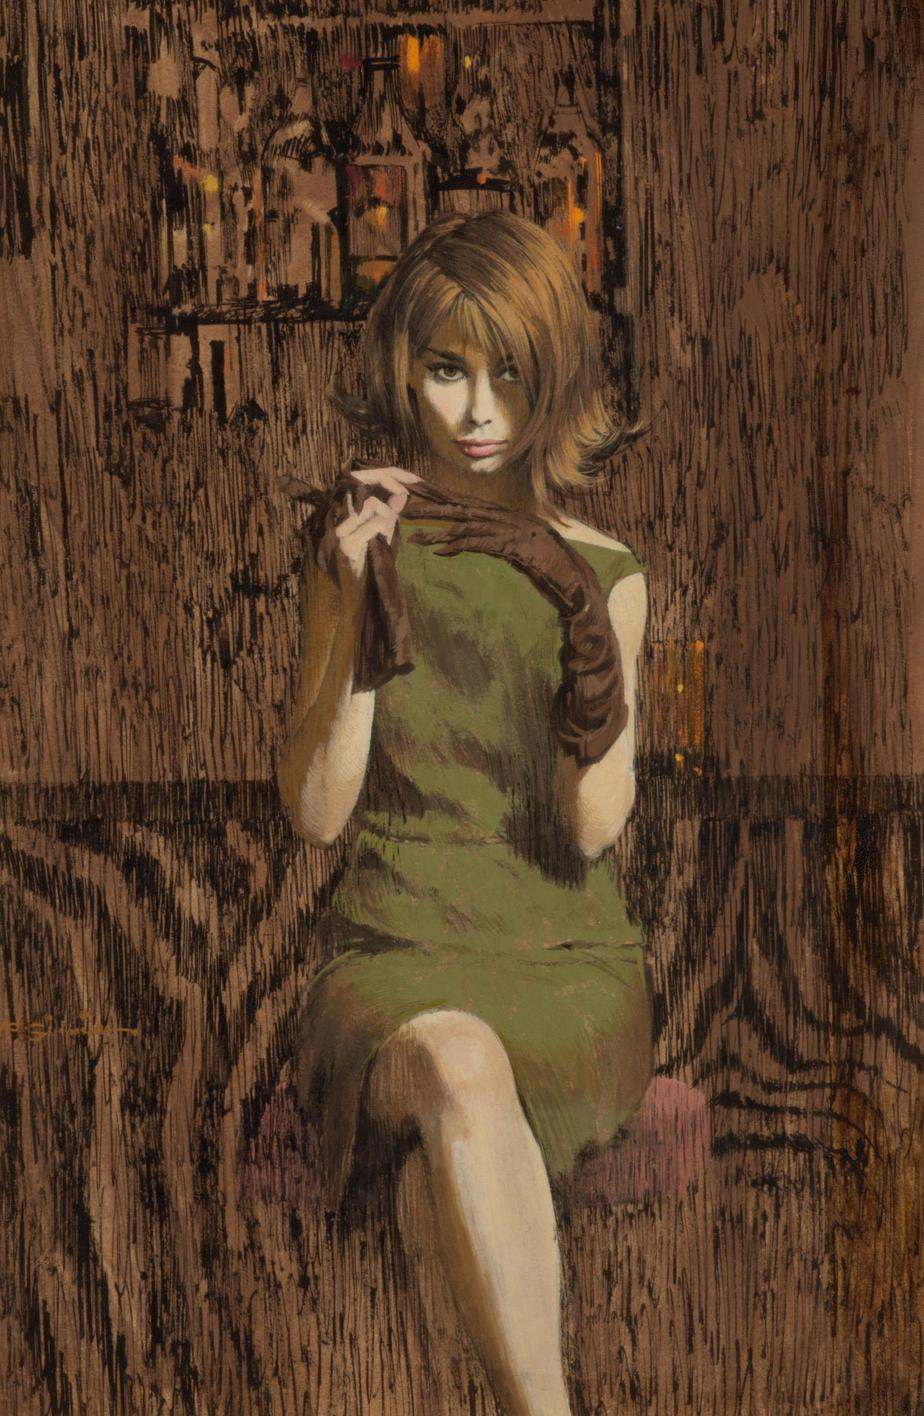 Robert McGinnis. Pin-Up Girls & Pulp Covers. Doctor Ojiplático.